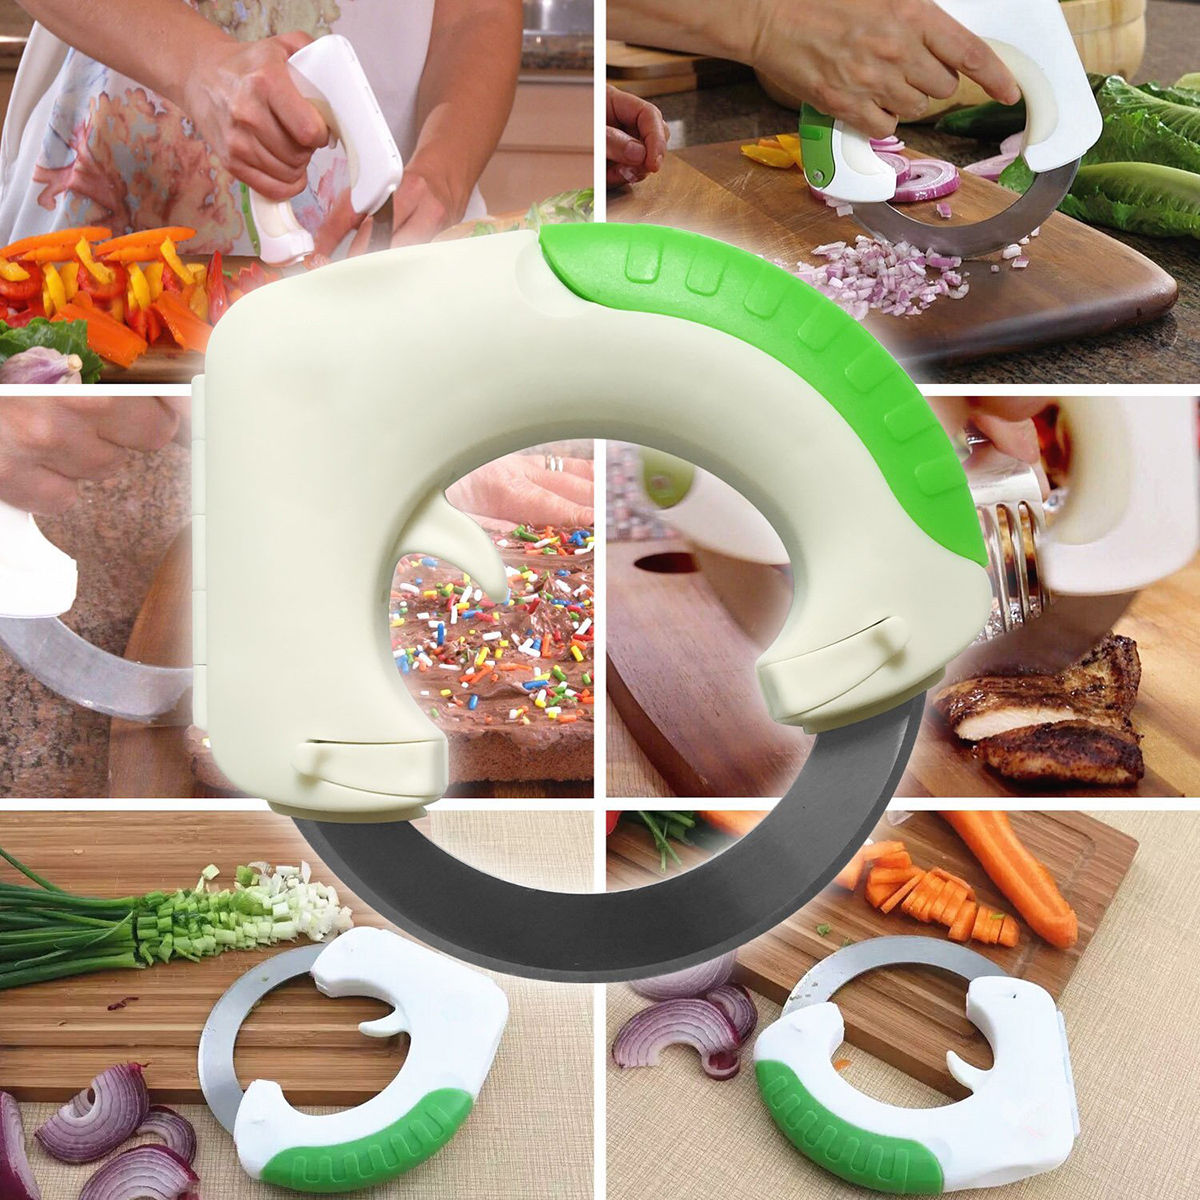 Round Knife-Circular chopping tool